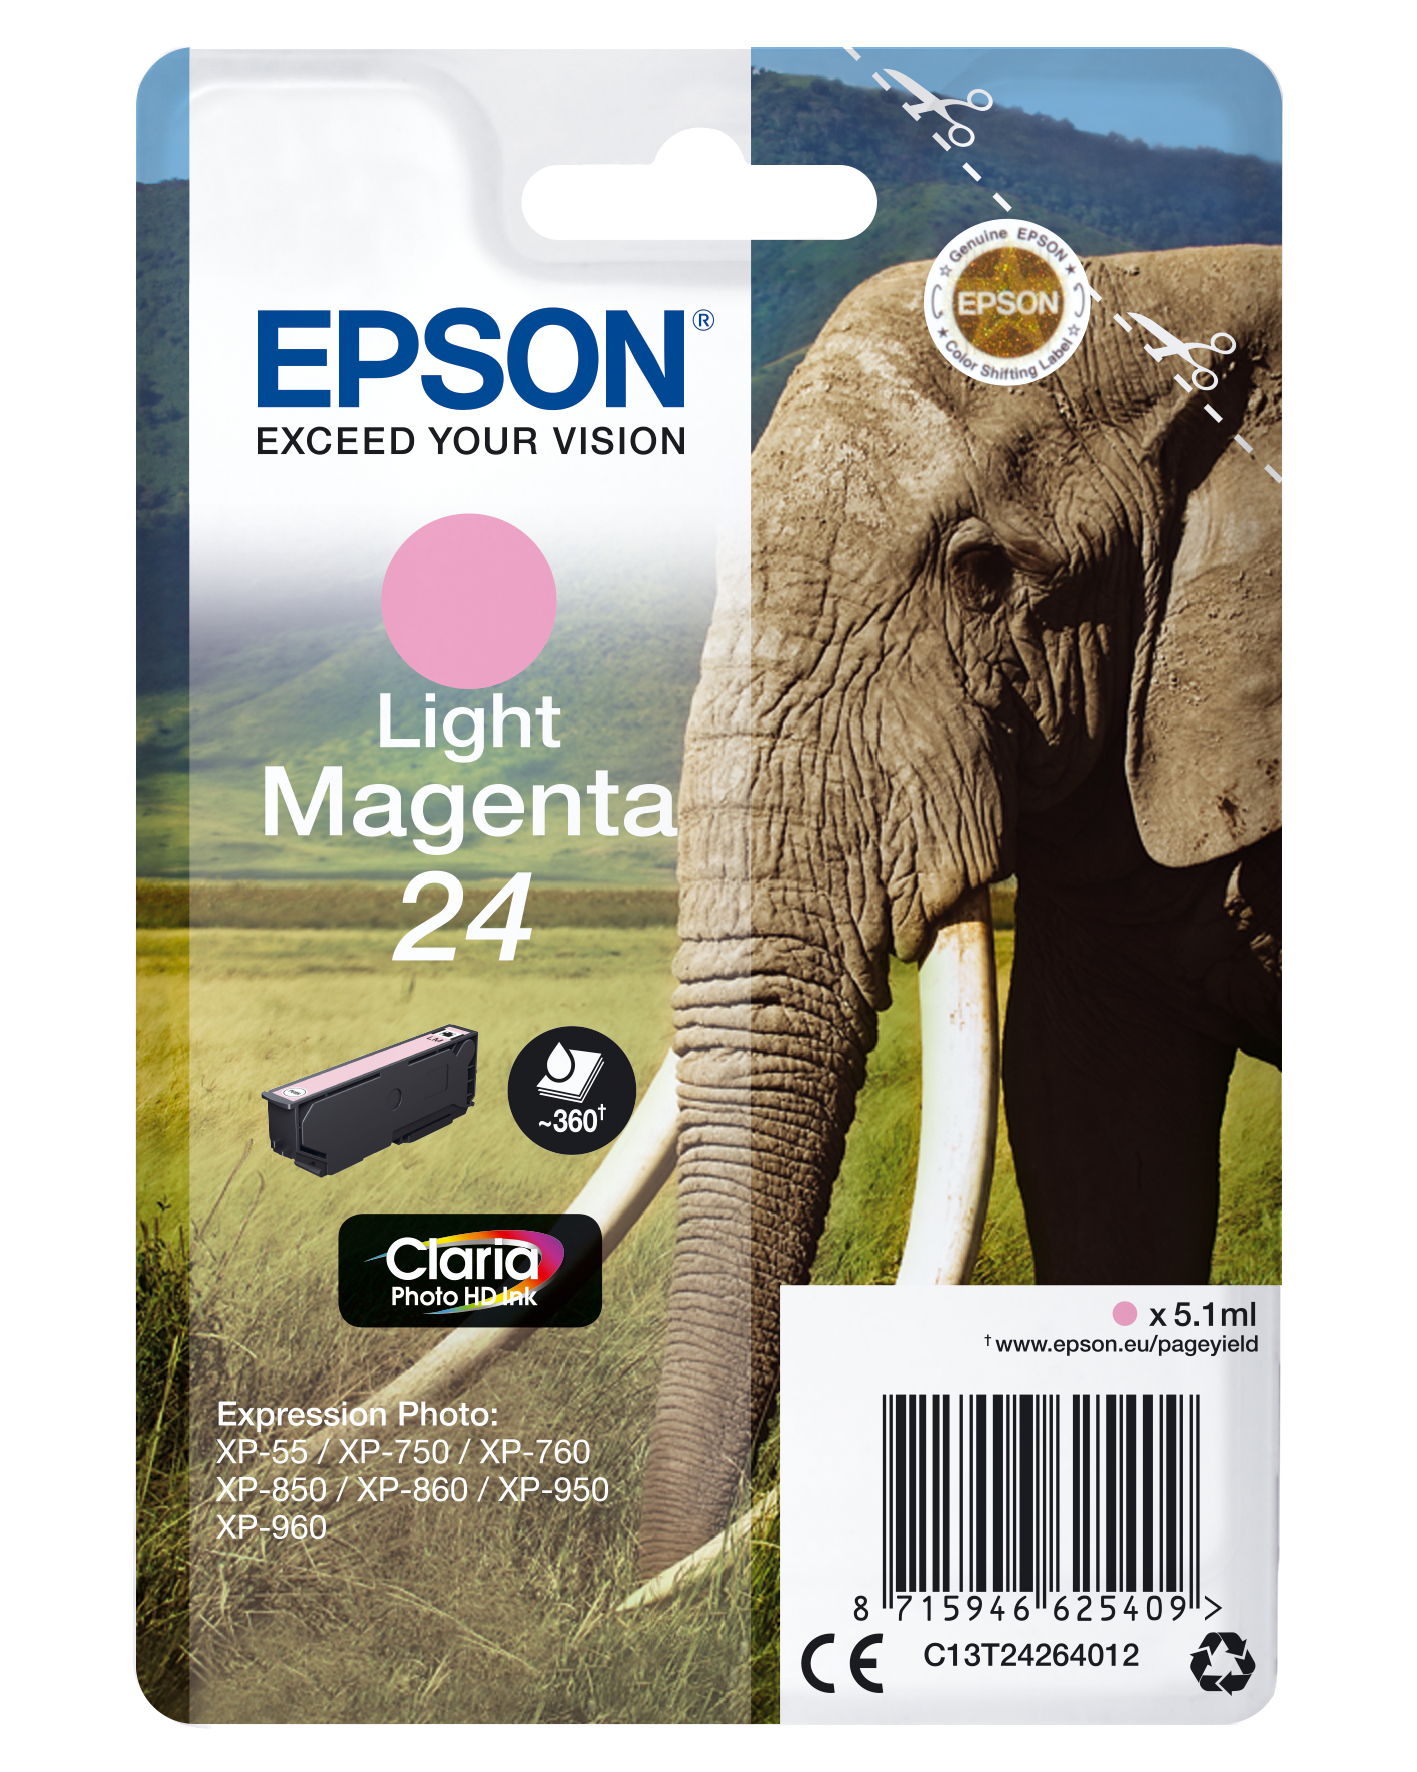 Epson Elephant Singlepack Light Magenta 24 Claria Photo HD Ink